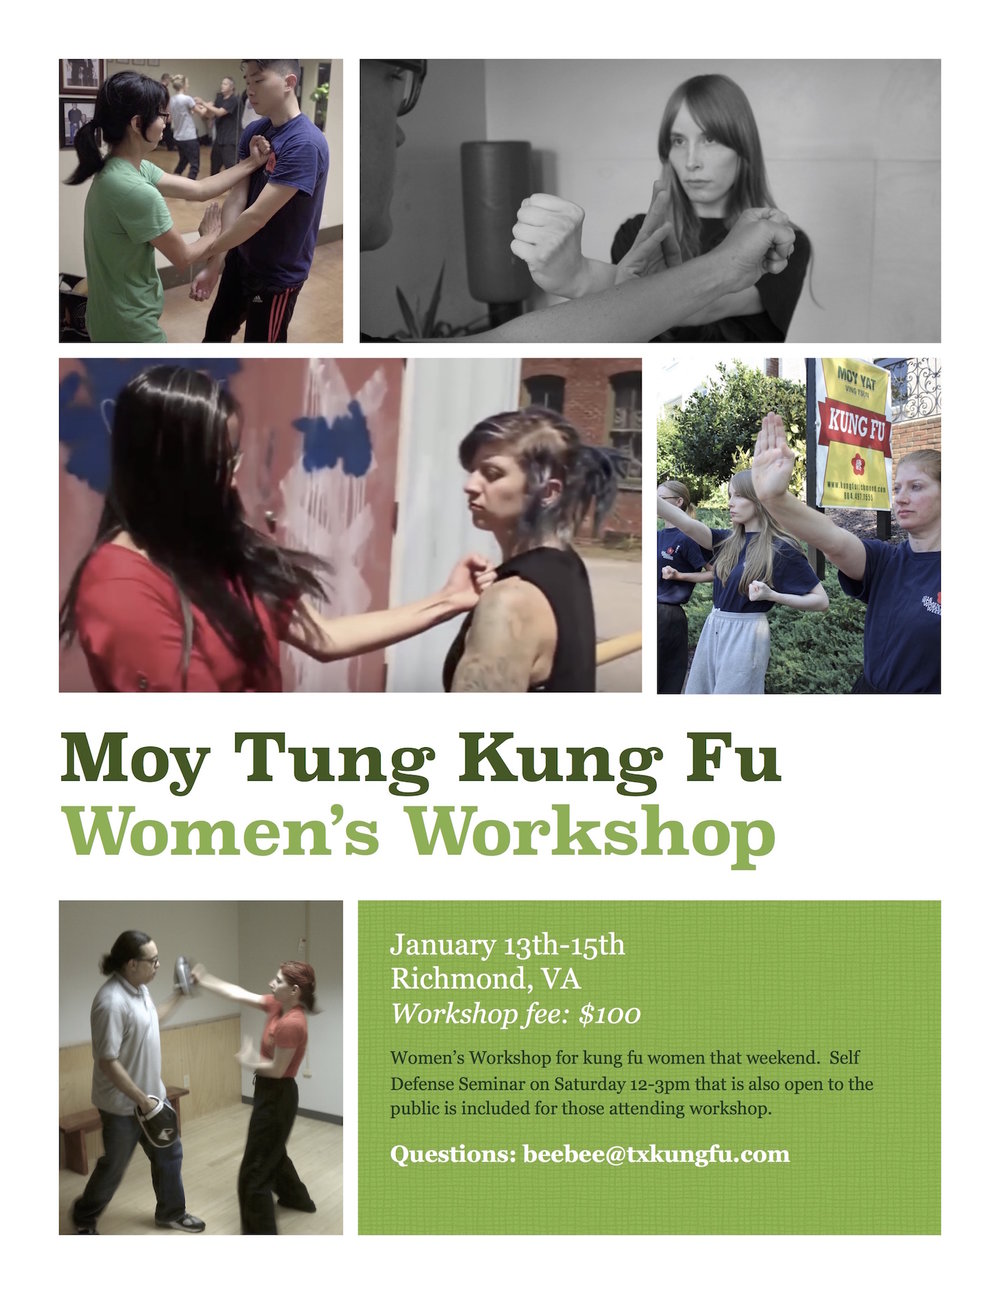 Moy Tung Kung Fu Women's Program workshop January 2017 at the Richmond Moy Yat Kung Fu Academy - teaching the Ving Tsun (wing chun) system of martial arts for self-defense